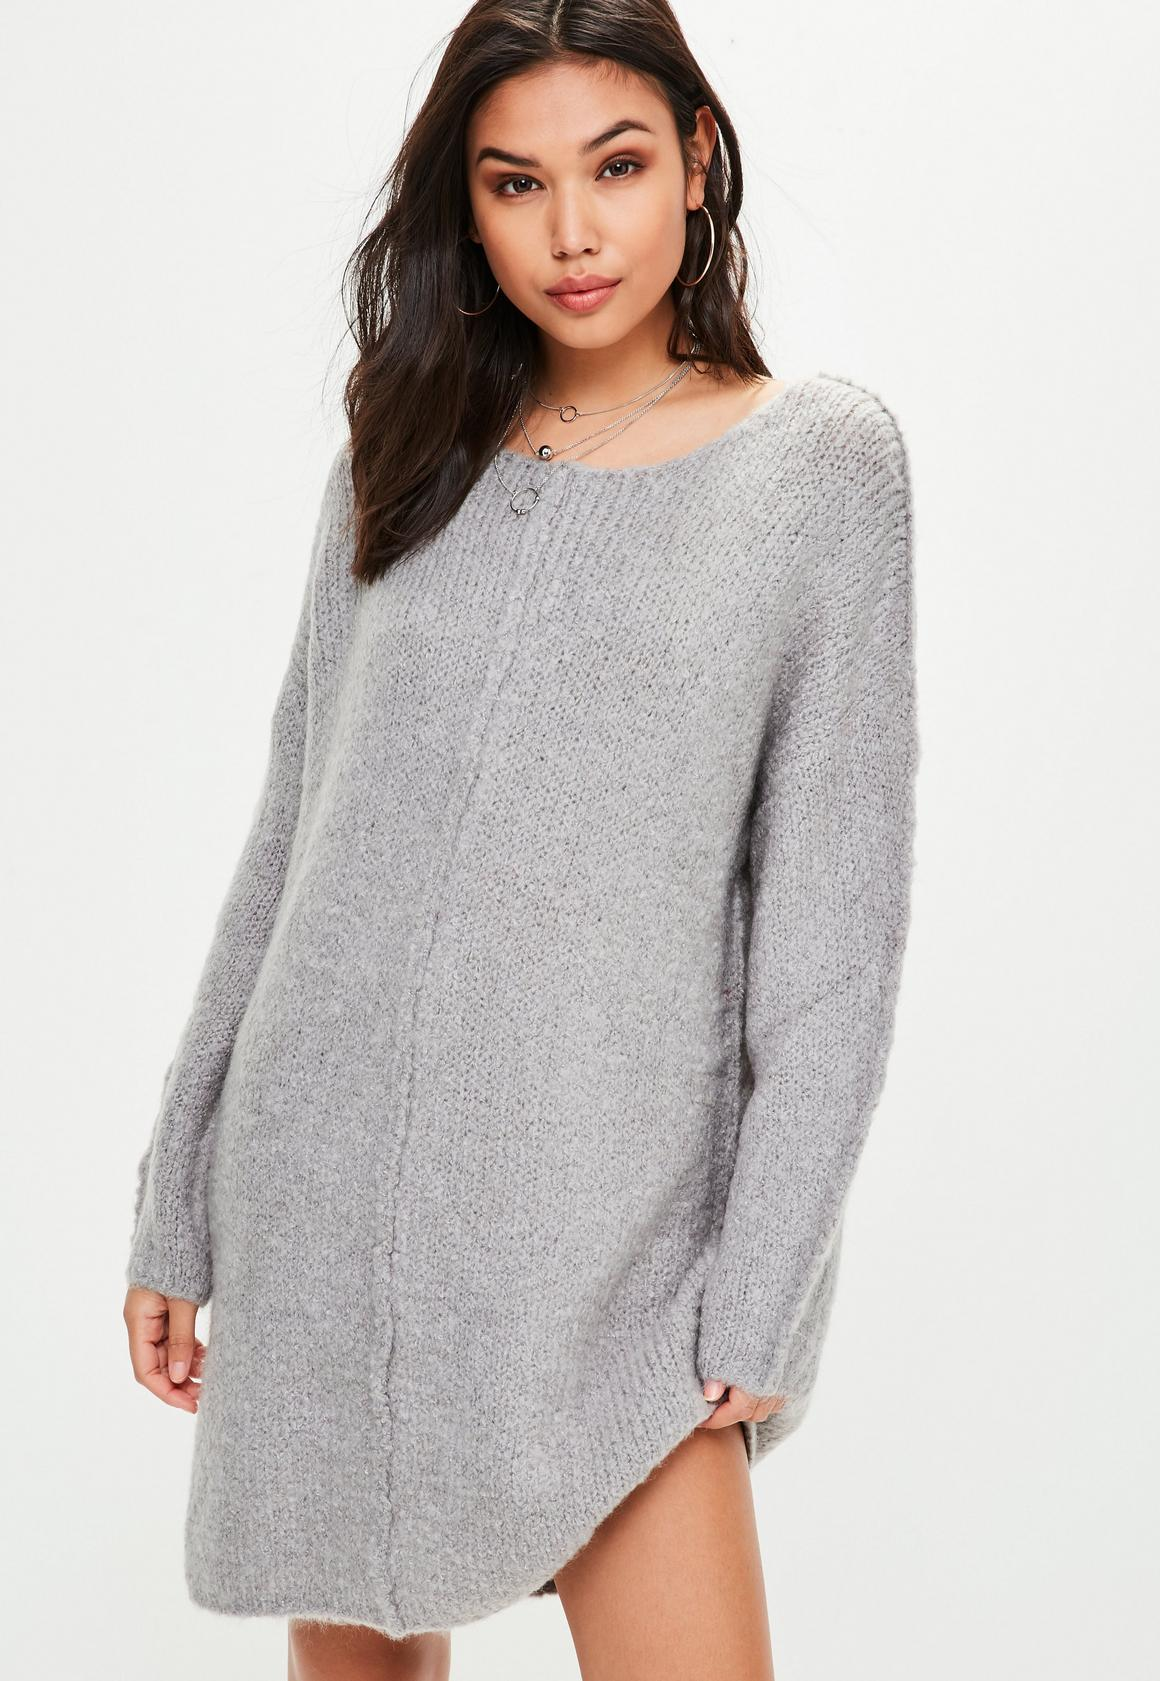 Gray Knitted Oversized Sweater Dress | Missguided